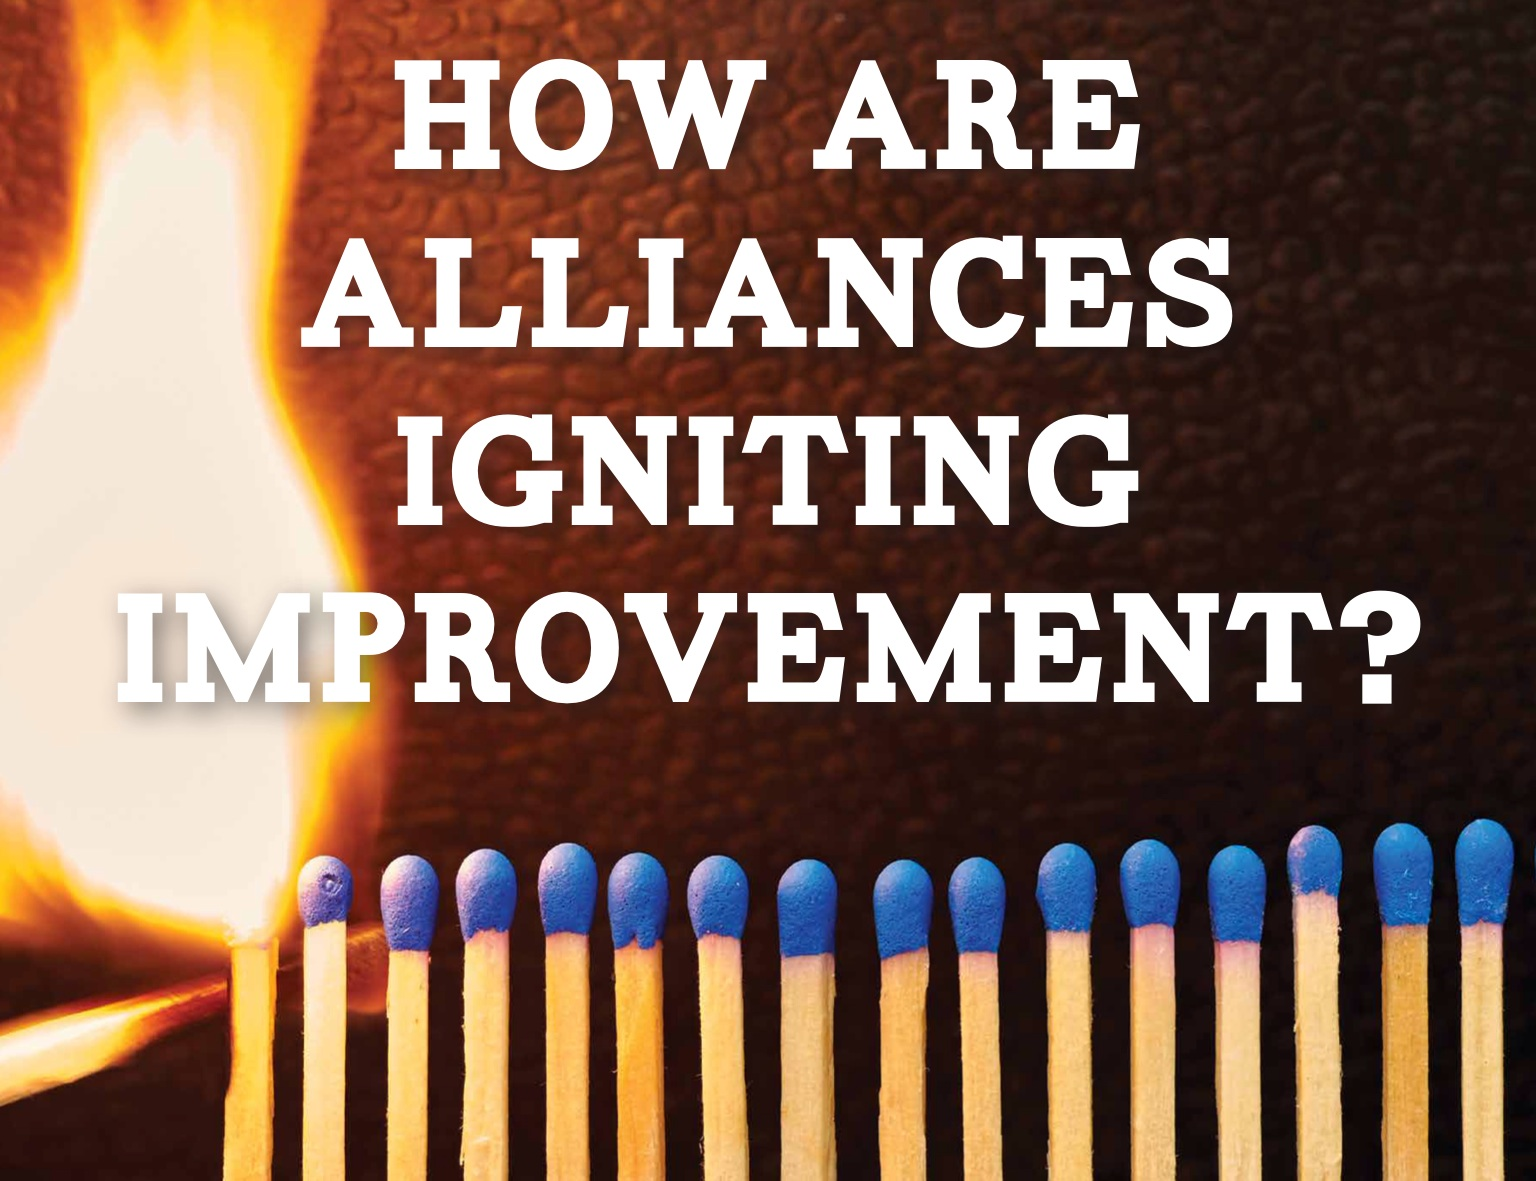 How are alliances igniting improvement?